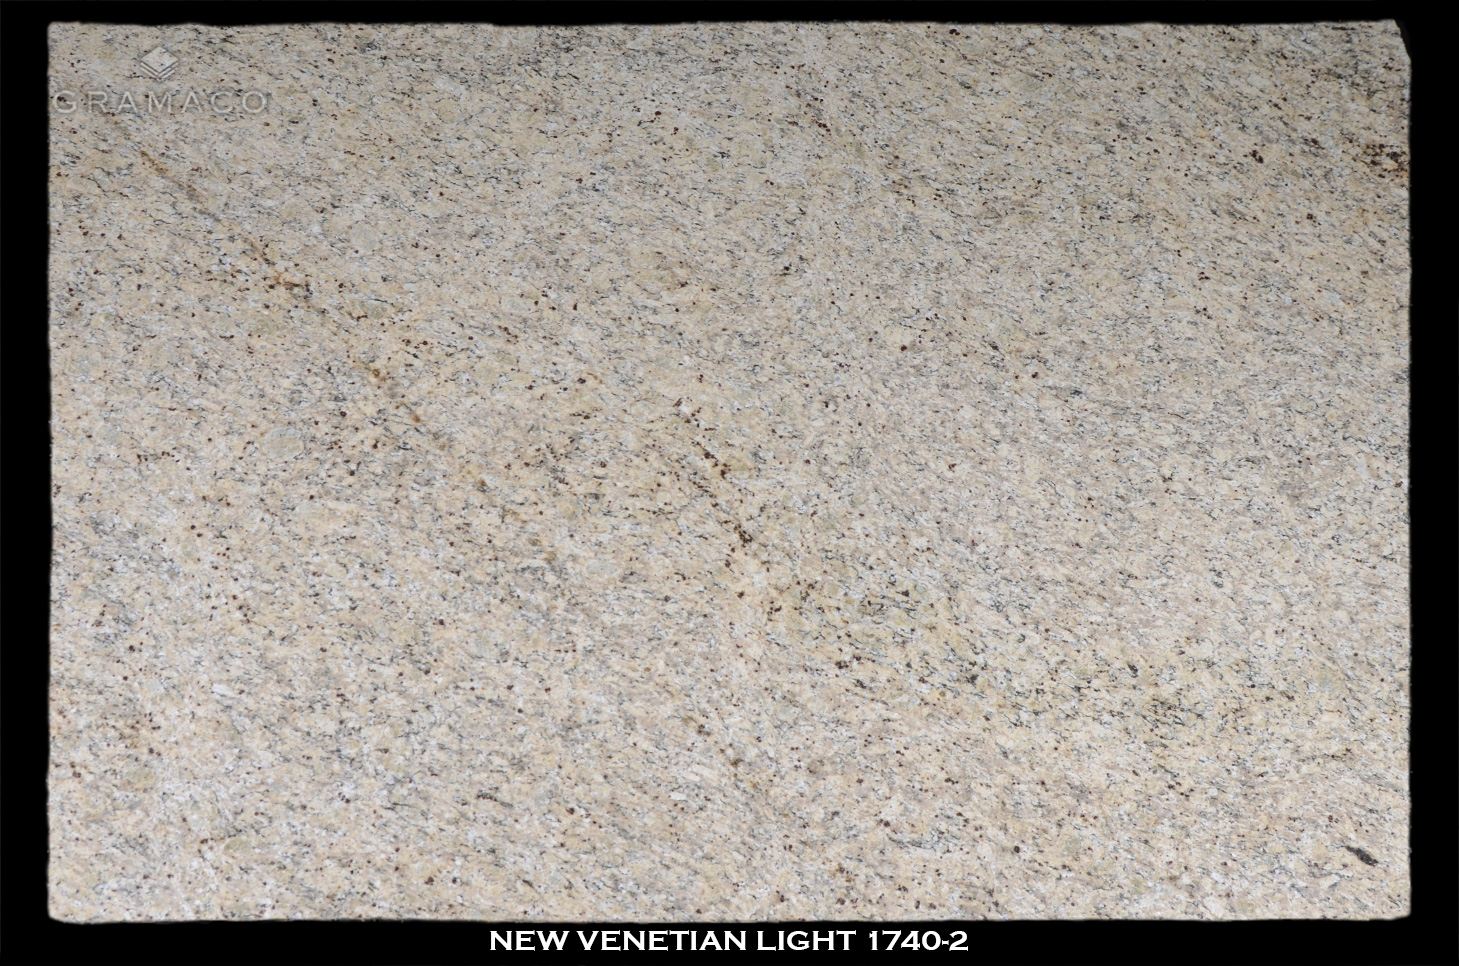 NEW-VENETIAN-LIGHT-1740-2-slab